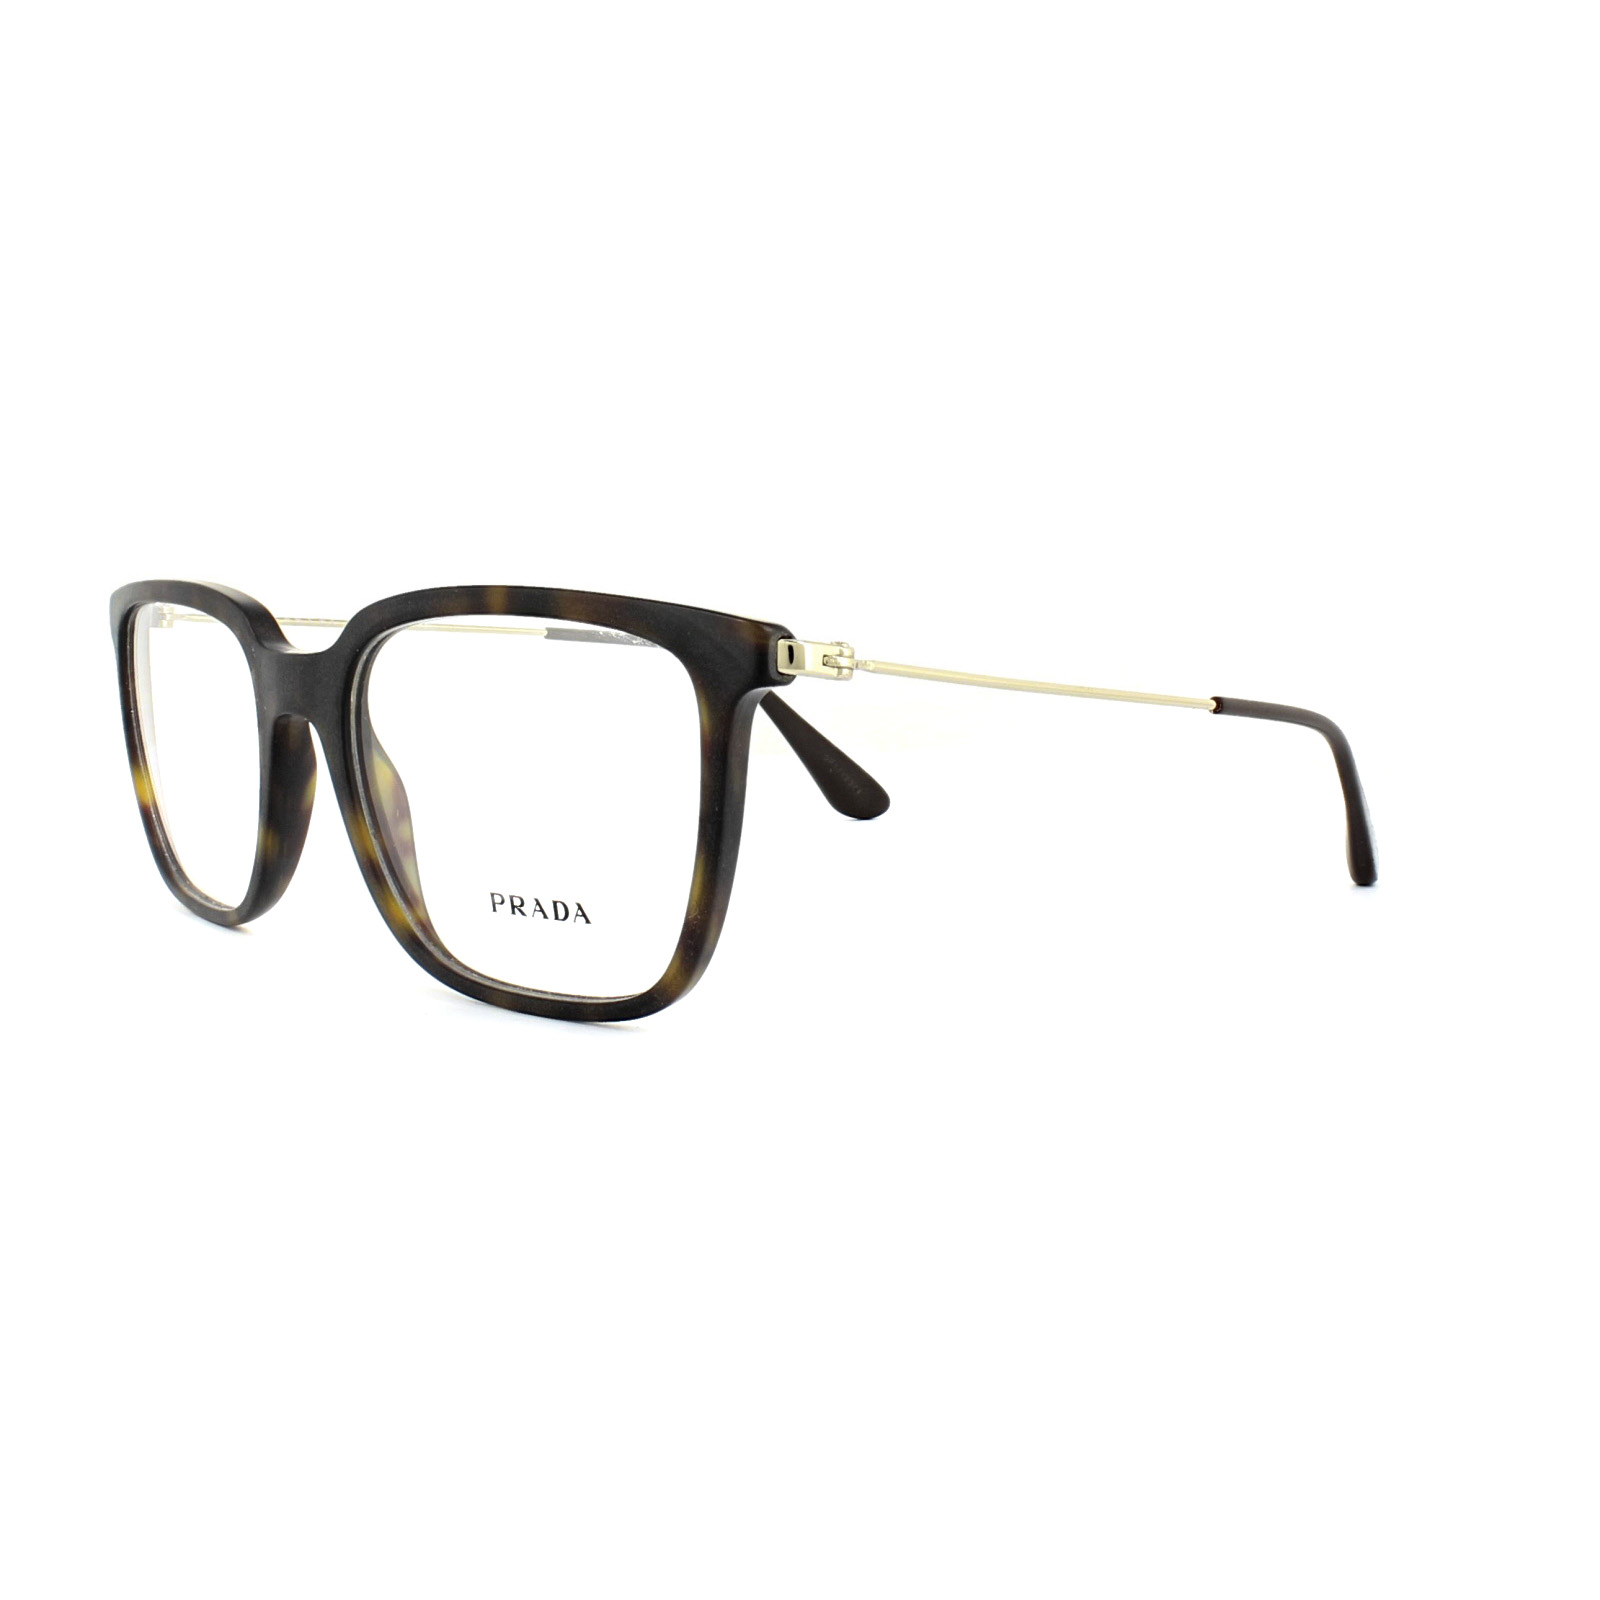 12eded97631 Cheap Prada PR 17TV Glasses Frames - Discounted Sunglasses